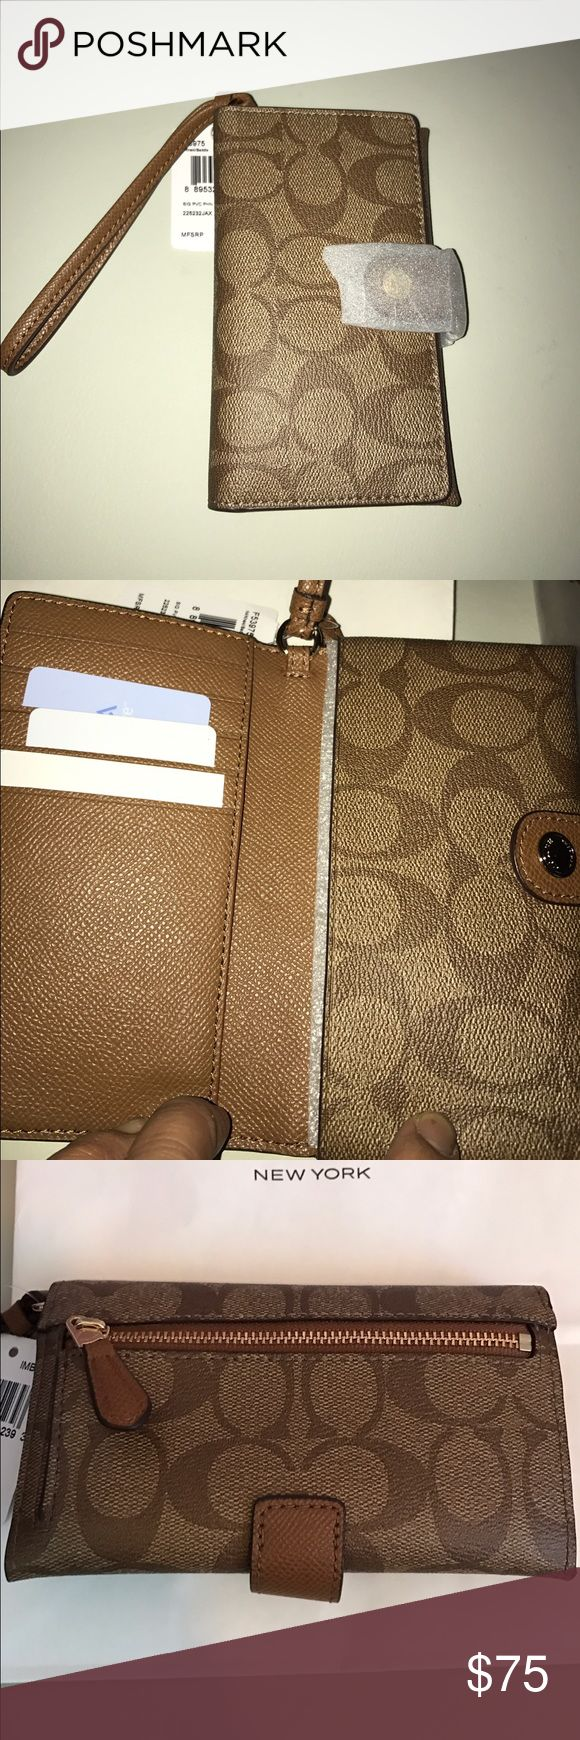 """NWT COACH Phone clutch Signature PVC Khaki/saddle This is the perfect clutch for the person on the go. FIts most smartphones (fits my IPhone 7 or Android). 5 credit card/ ID slots and has extra compartment for $$ bills. Back has a zip pocket for coins etc. I love the PVC material, it makes it harder to get it stained. Leather strap and gold hardware. Still in original packaging and only took it out to take photos. 6"""" x 3.5"""", Khaki and saddle brown Signature Coach. ❤️ this wallet. Coach Bags…"""